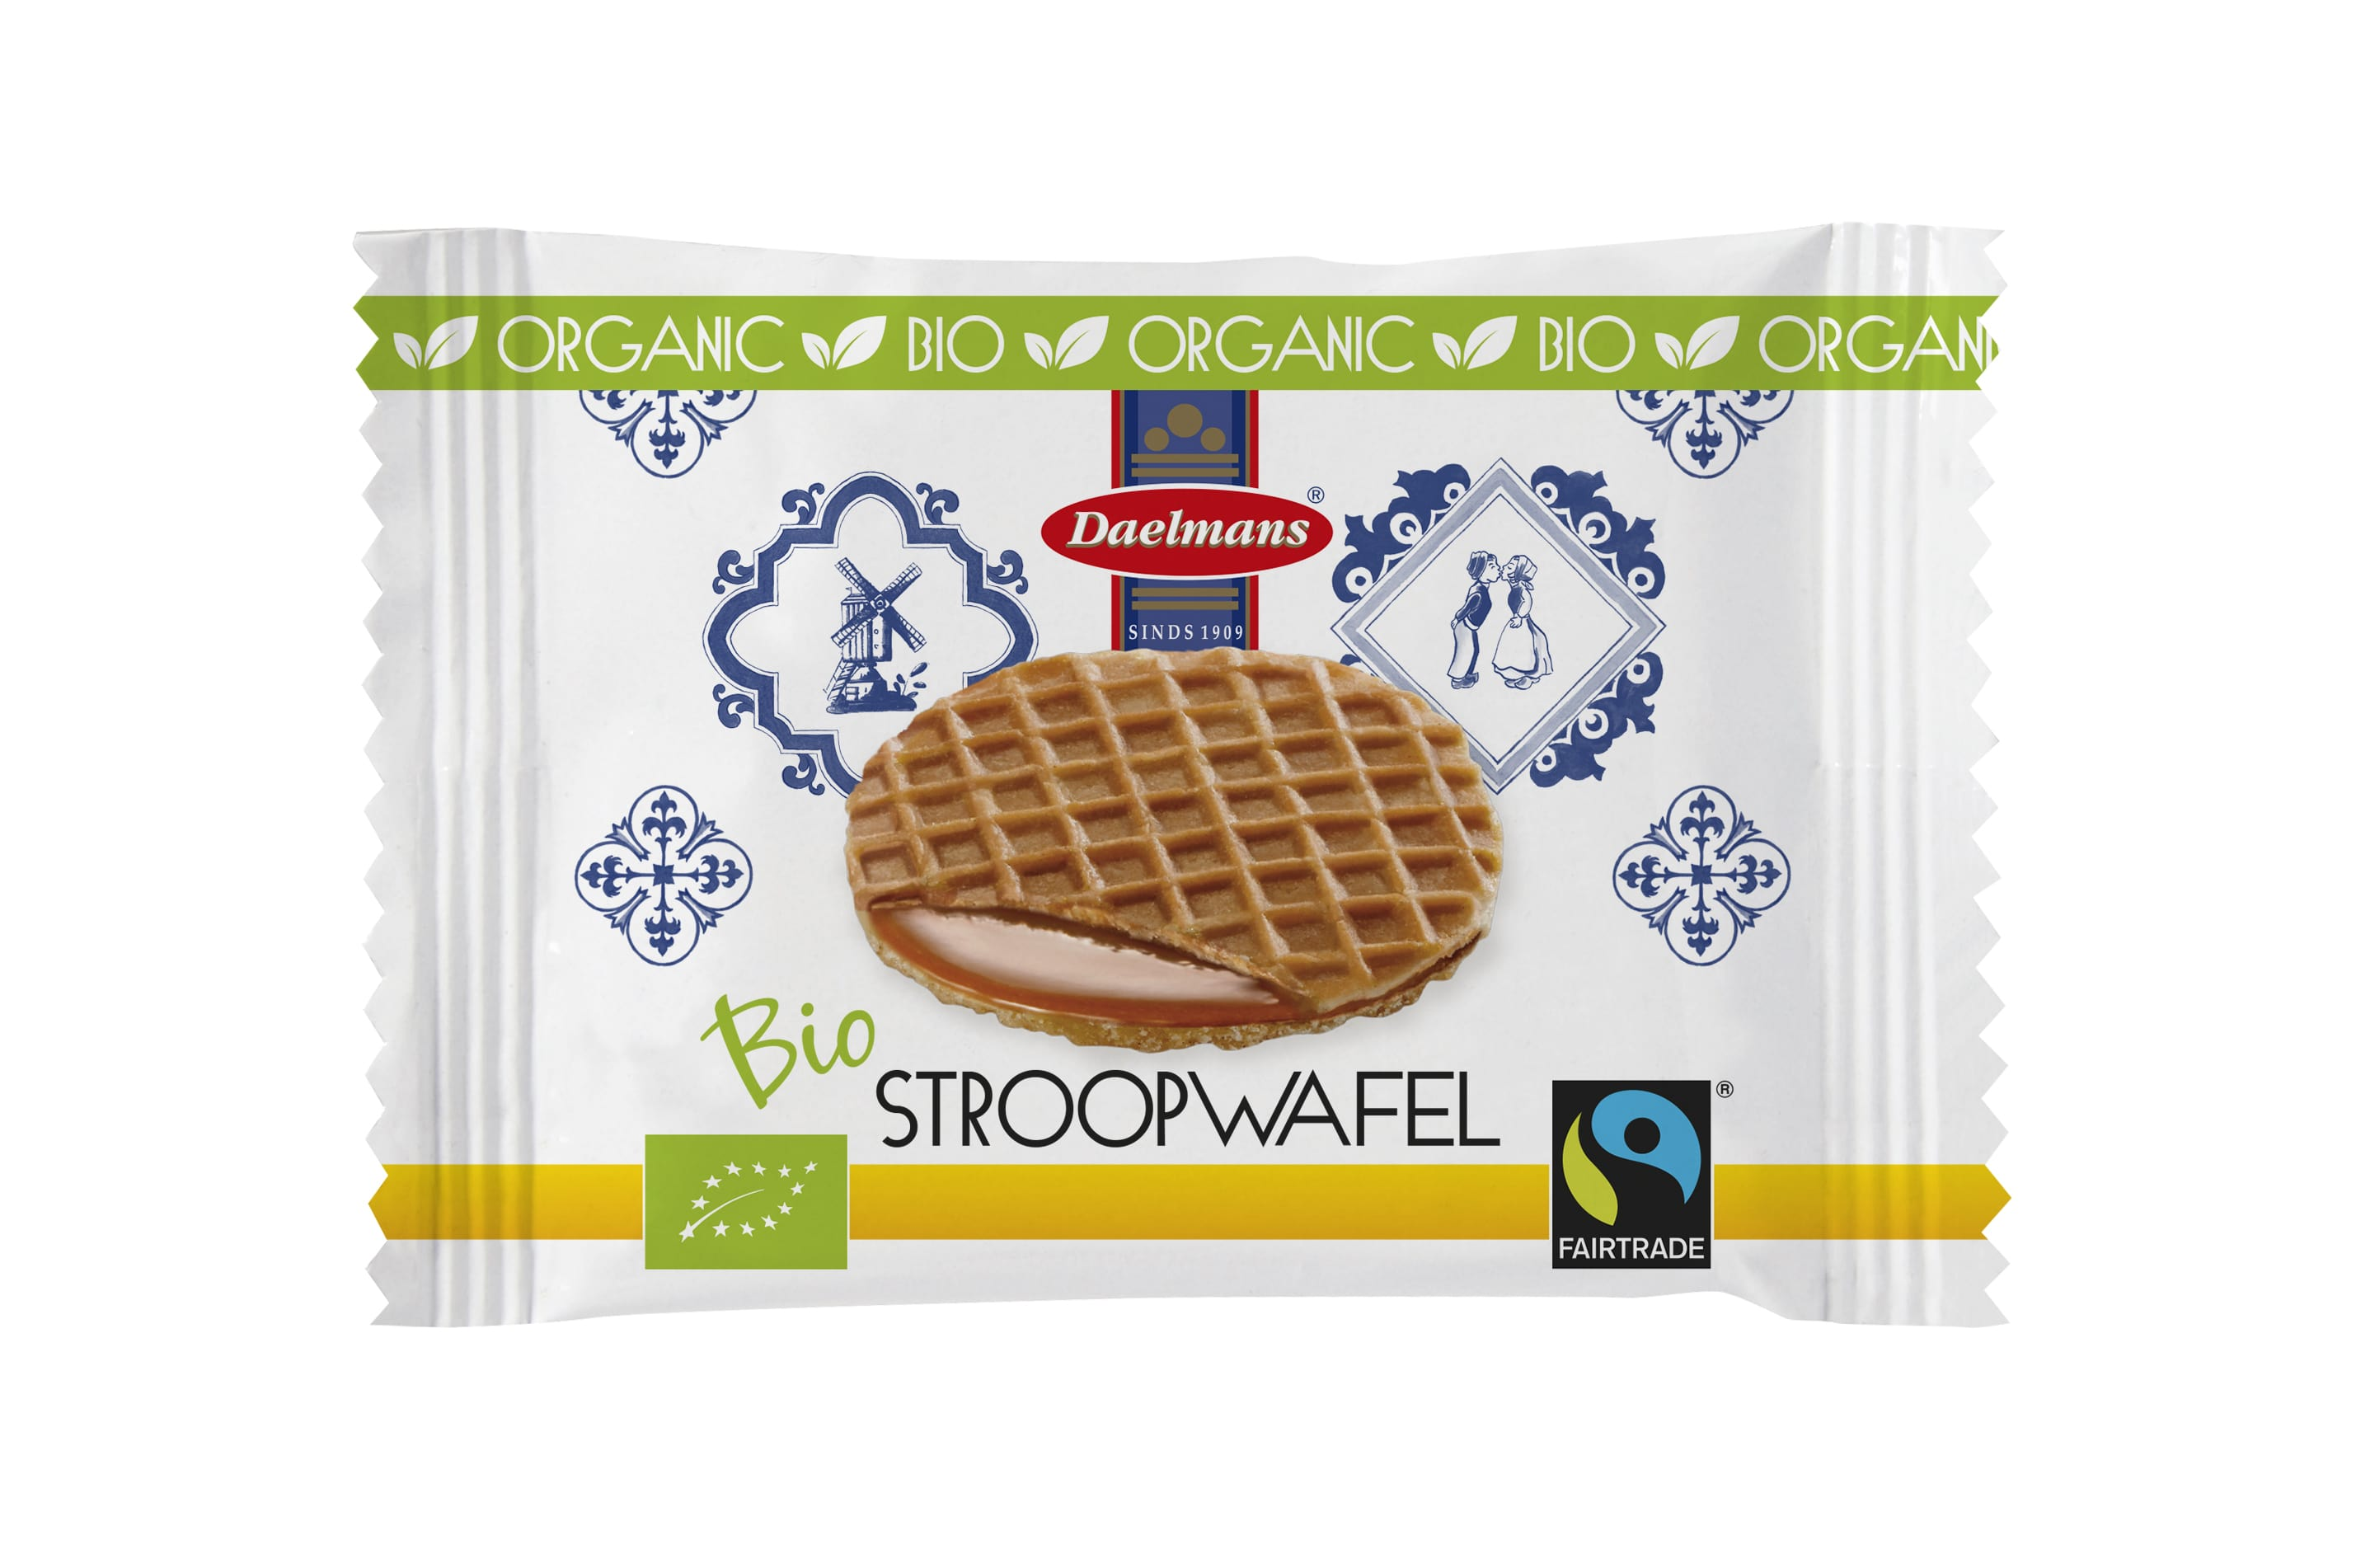 3D DAE Bio Fairtrade 2 mock up stroopwafel caramel mini front-min